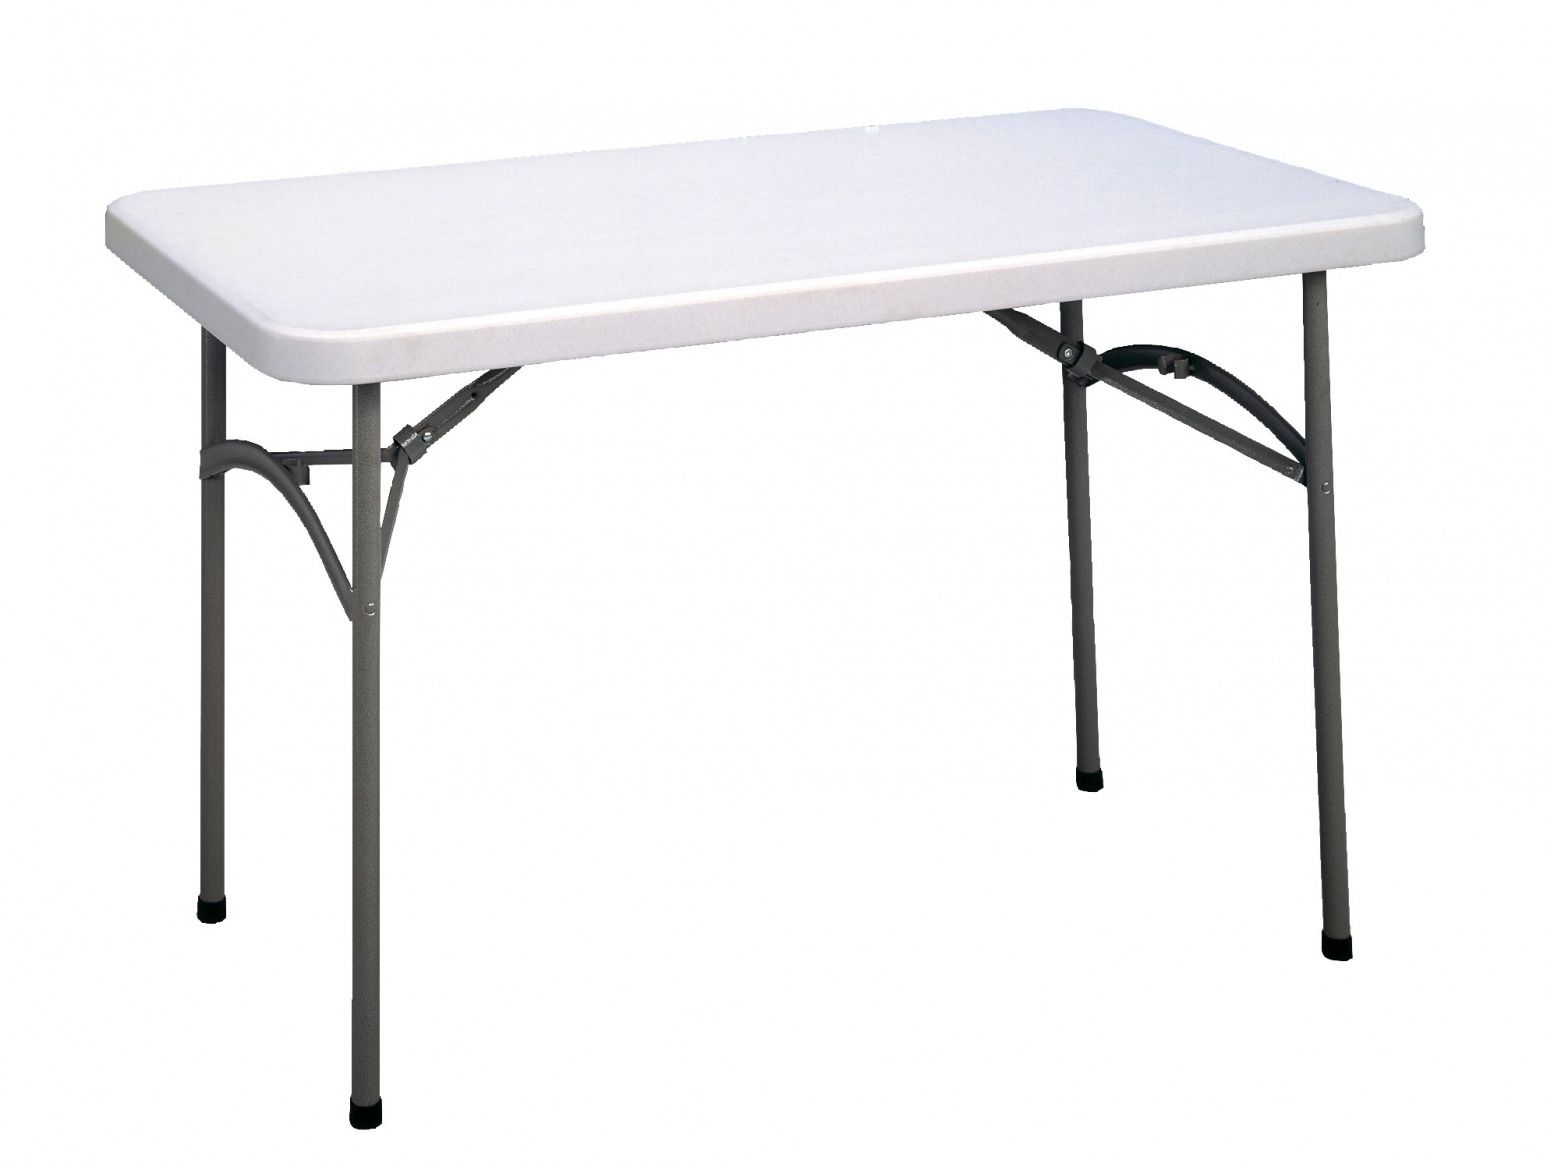 Superb 100+ Used Round Folding Tables For Sale   Best Way To Paint Wood Furniture  Check